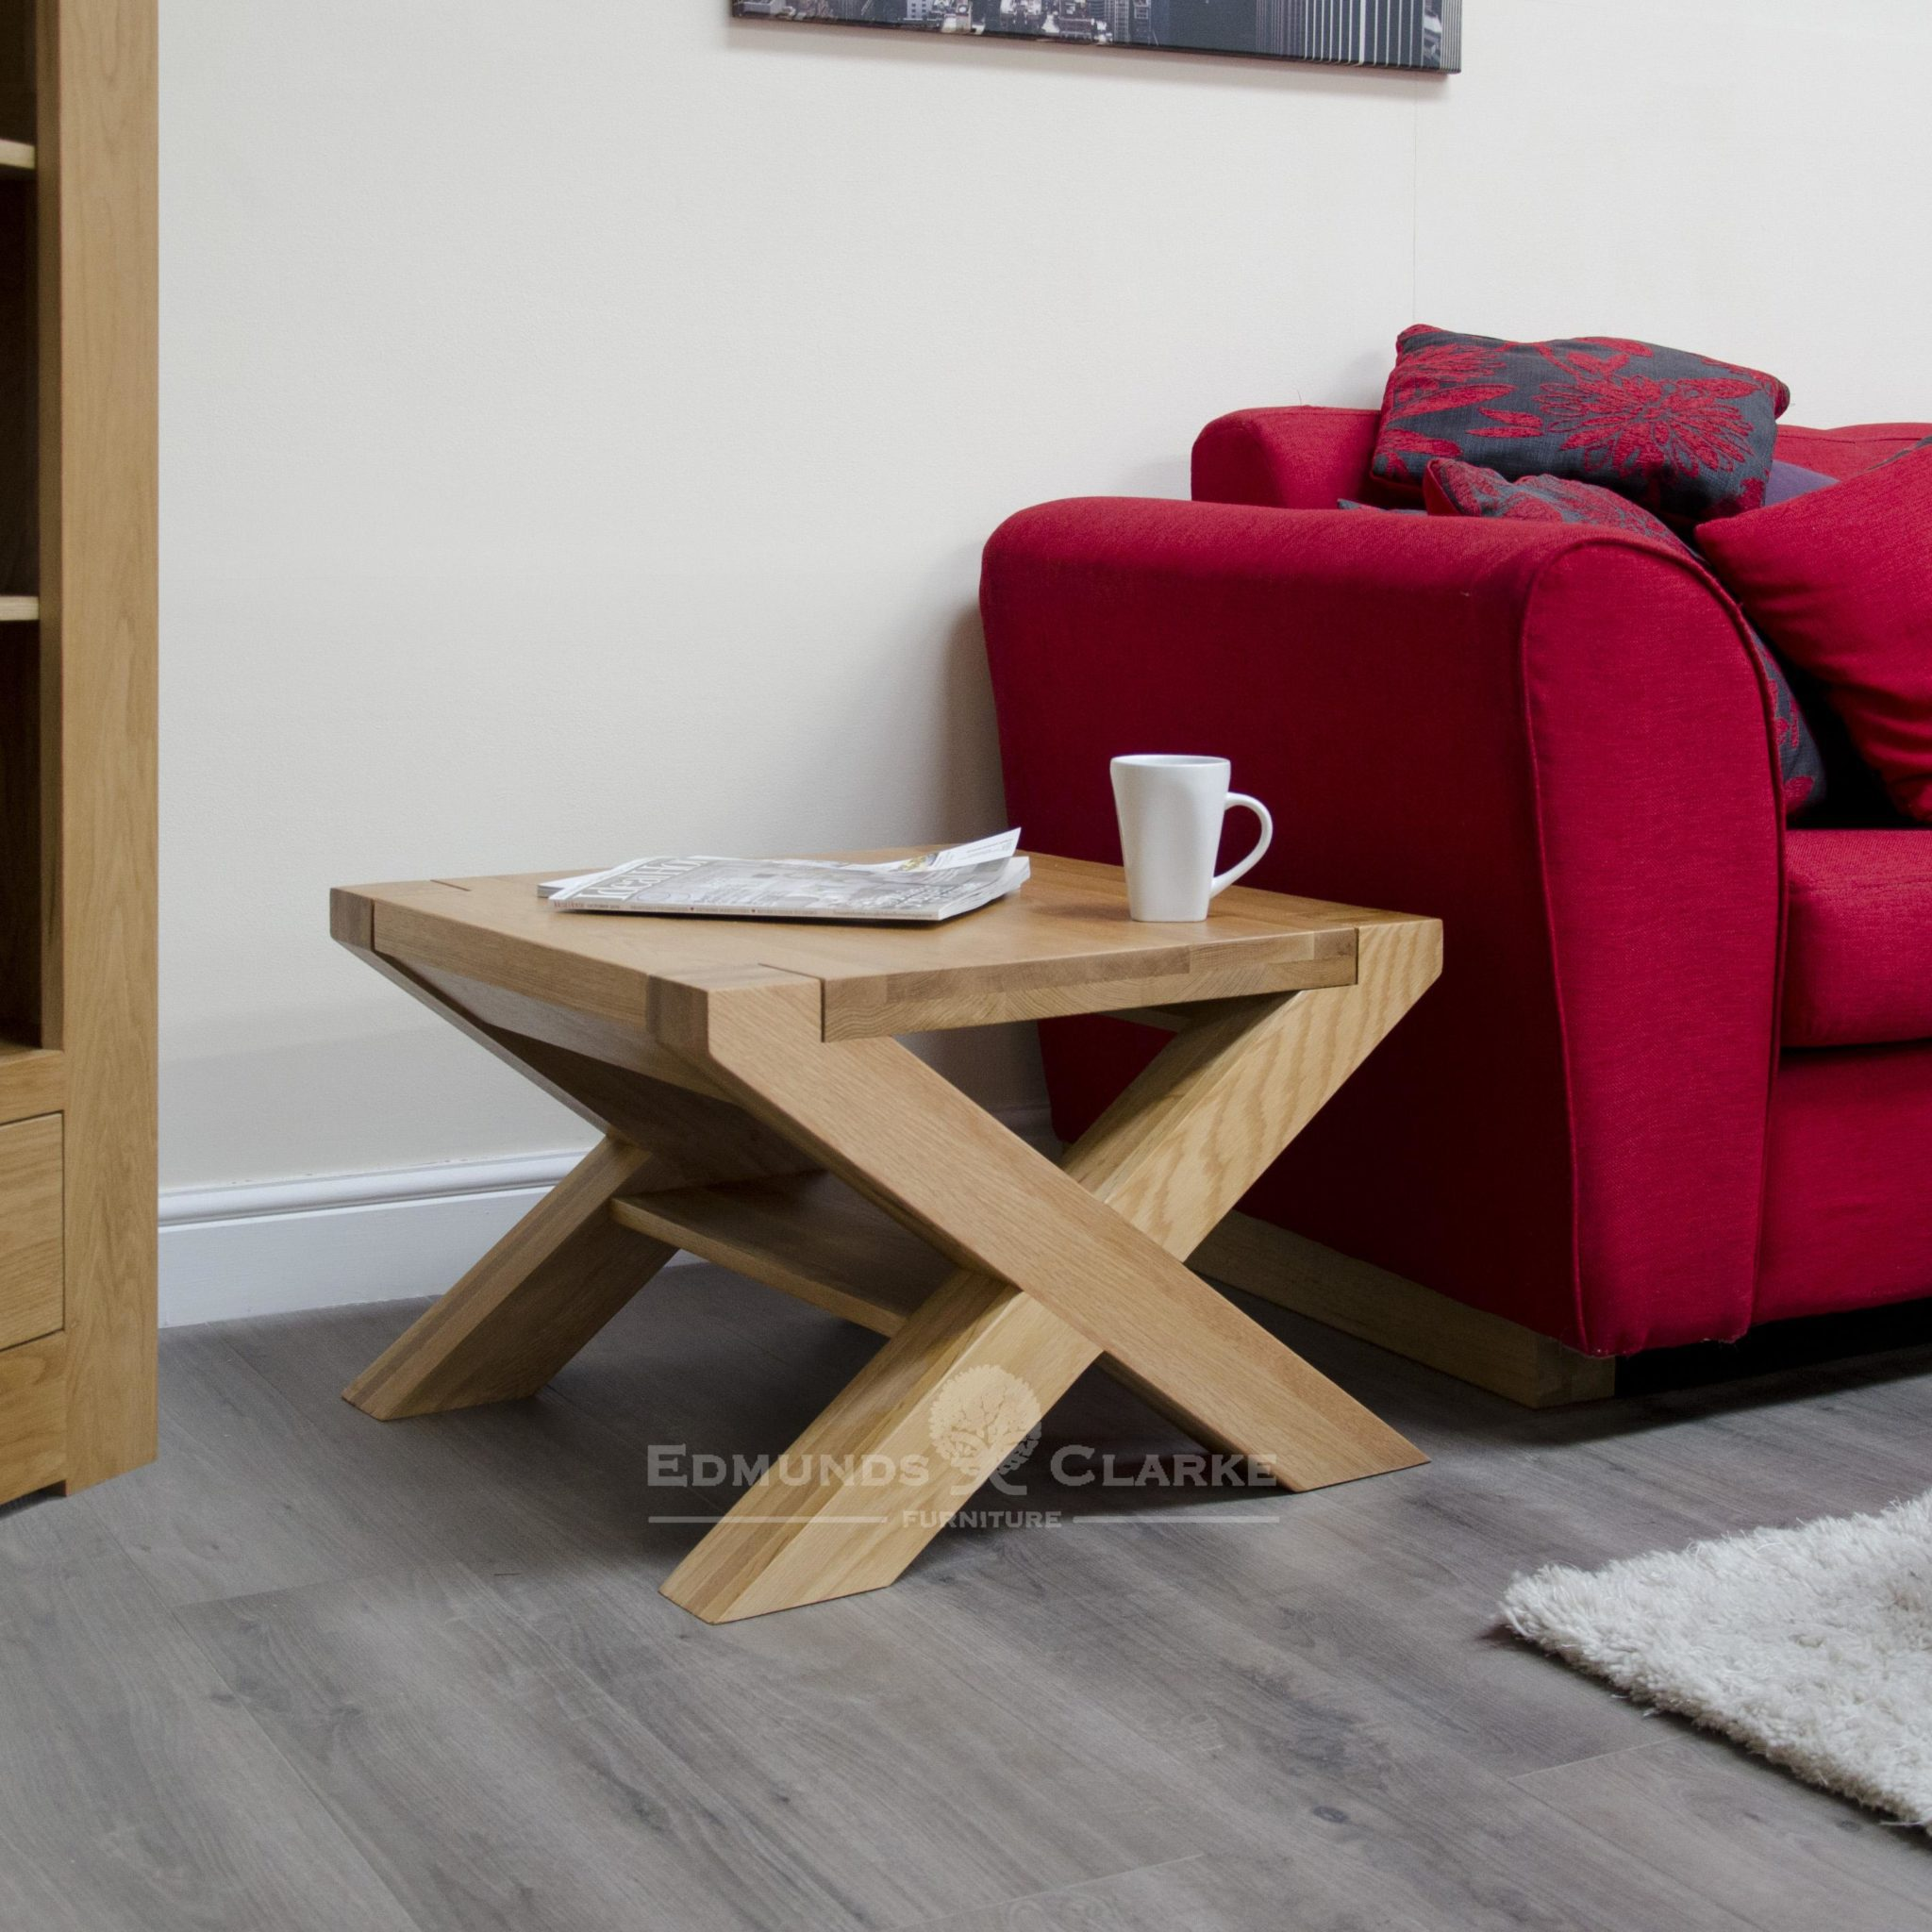 Stylish designer z cross leg coffee table 2' x 2'